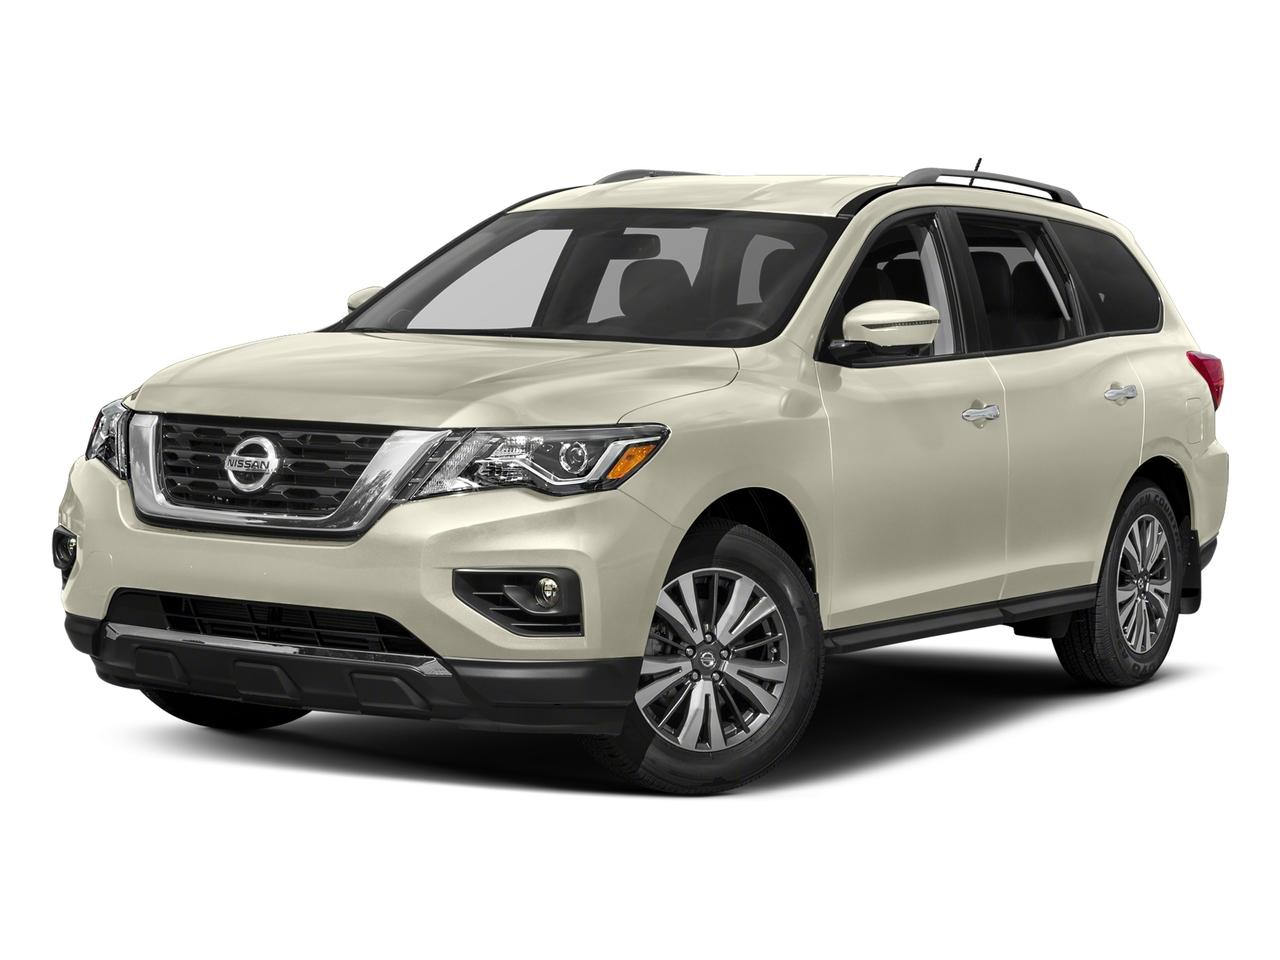 2017 Nissan Pathfinder Vehicle Photo in Owensboro, KY 42303